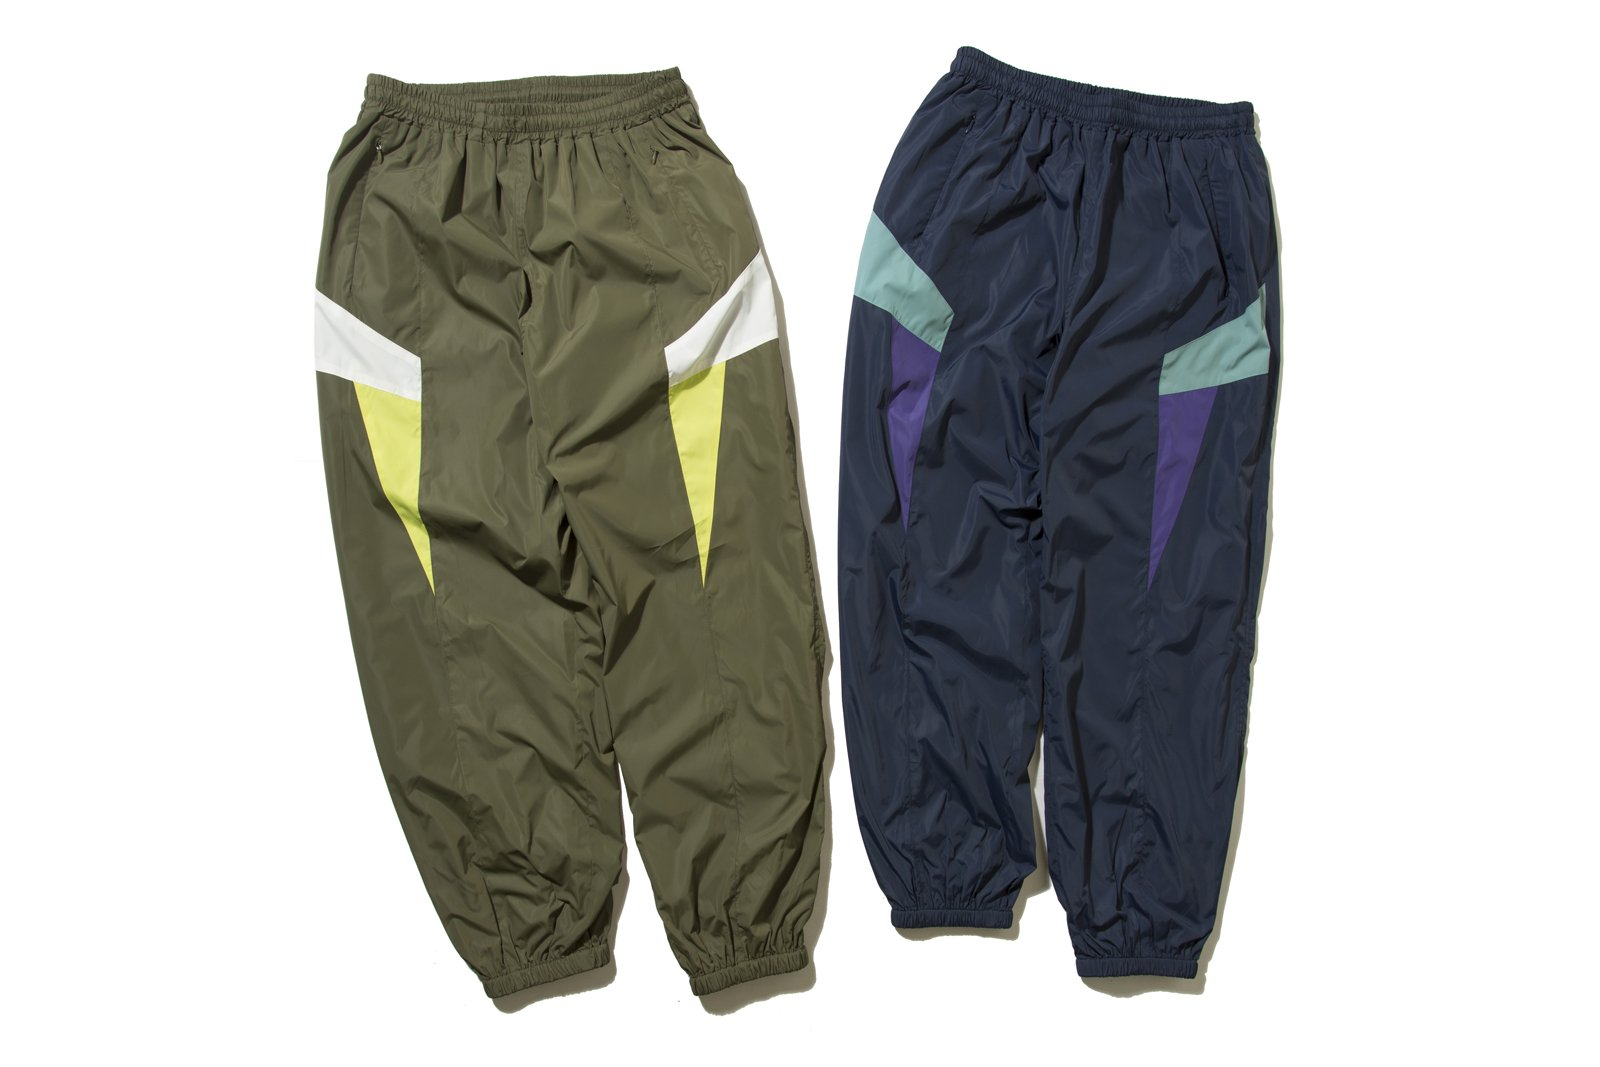 DeMarcoLab. N/S TRACK PANT 2COLORS